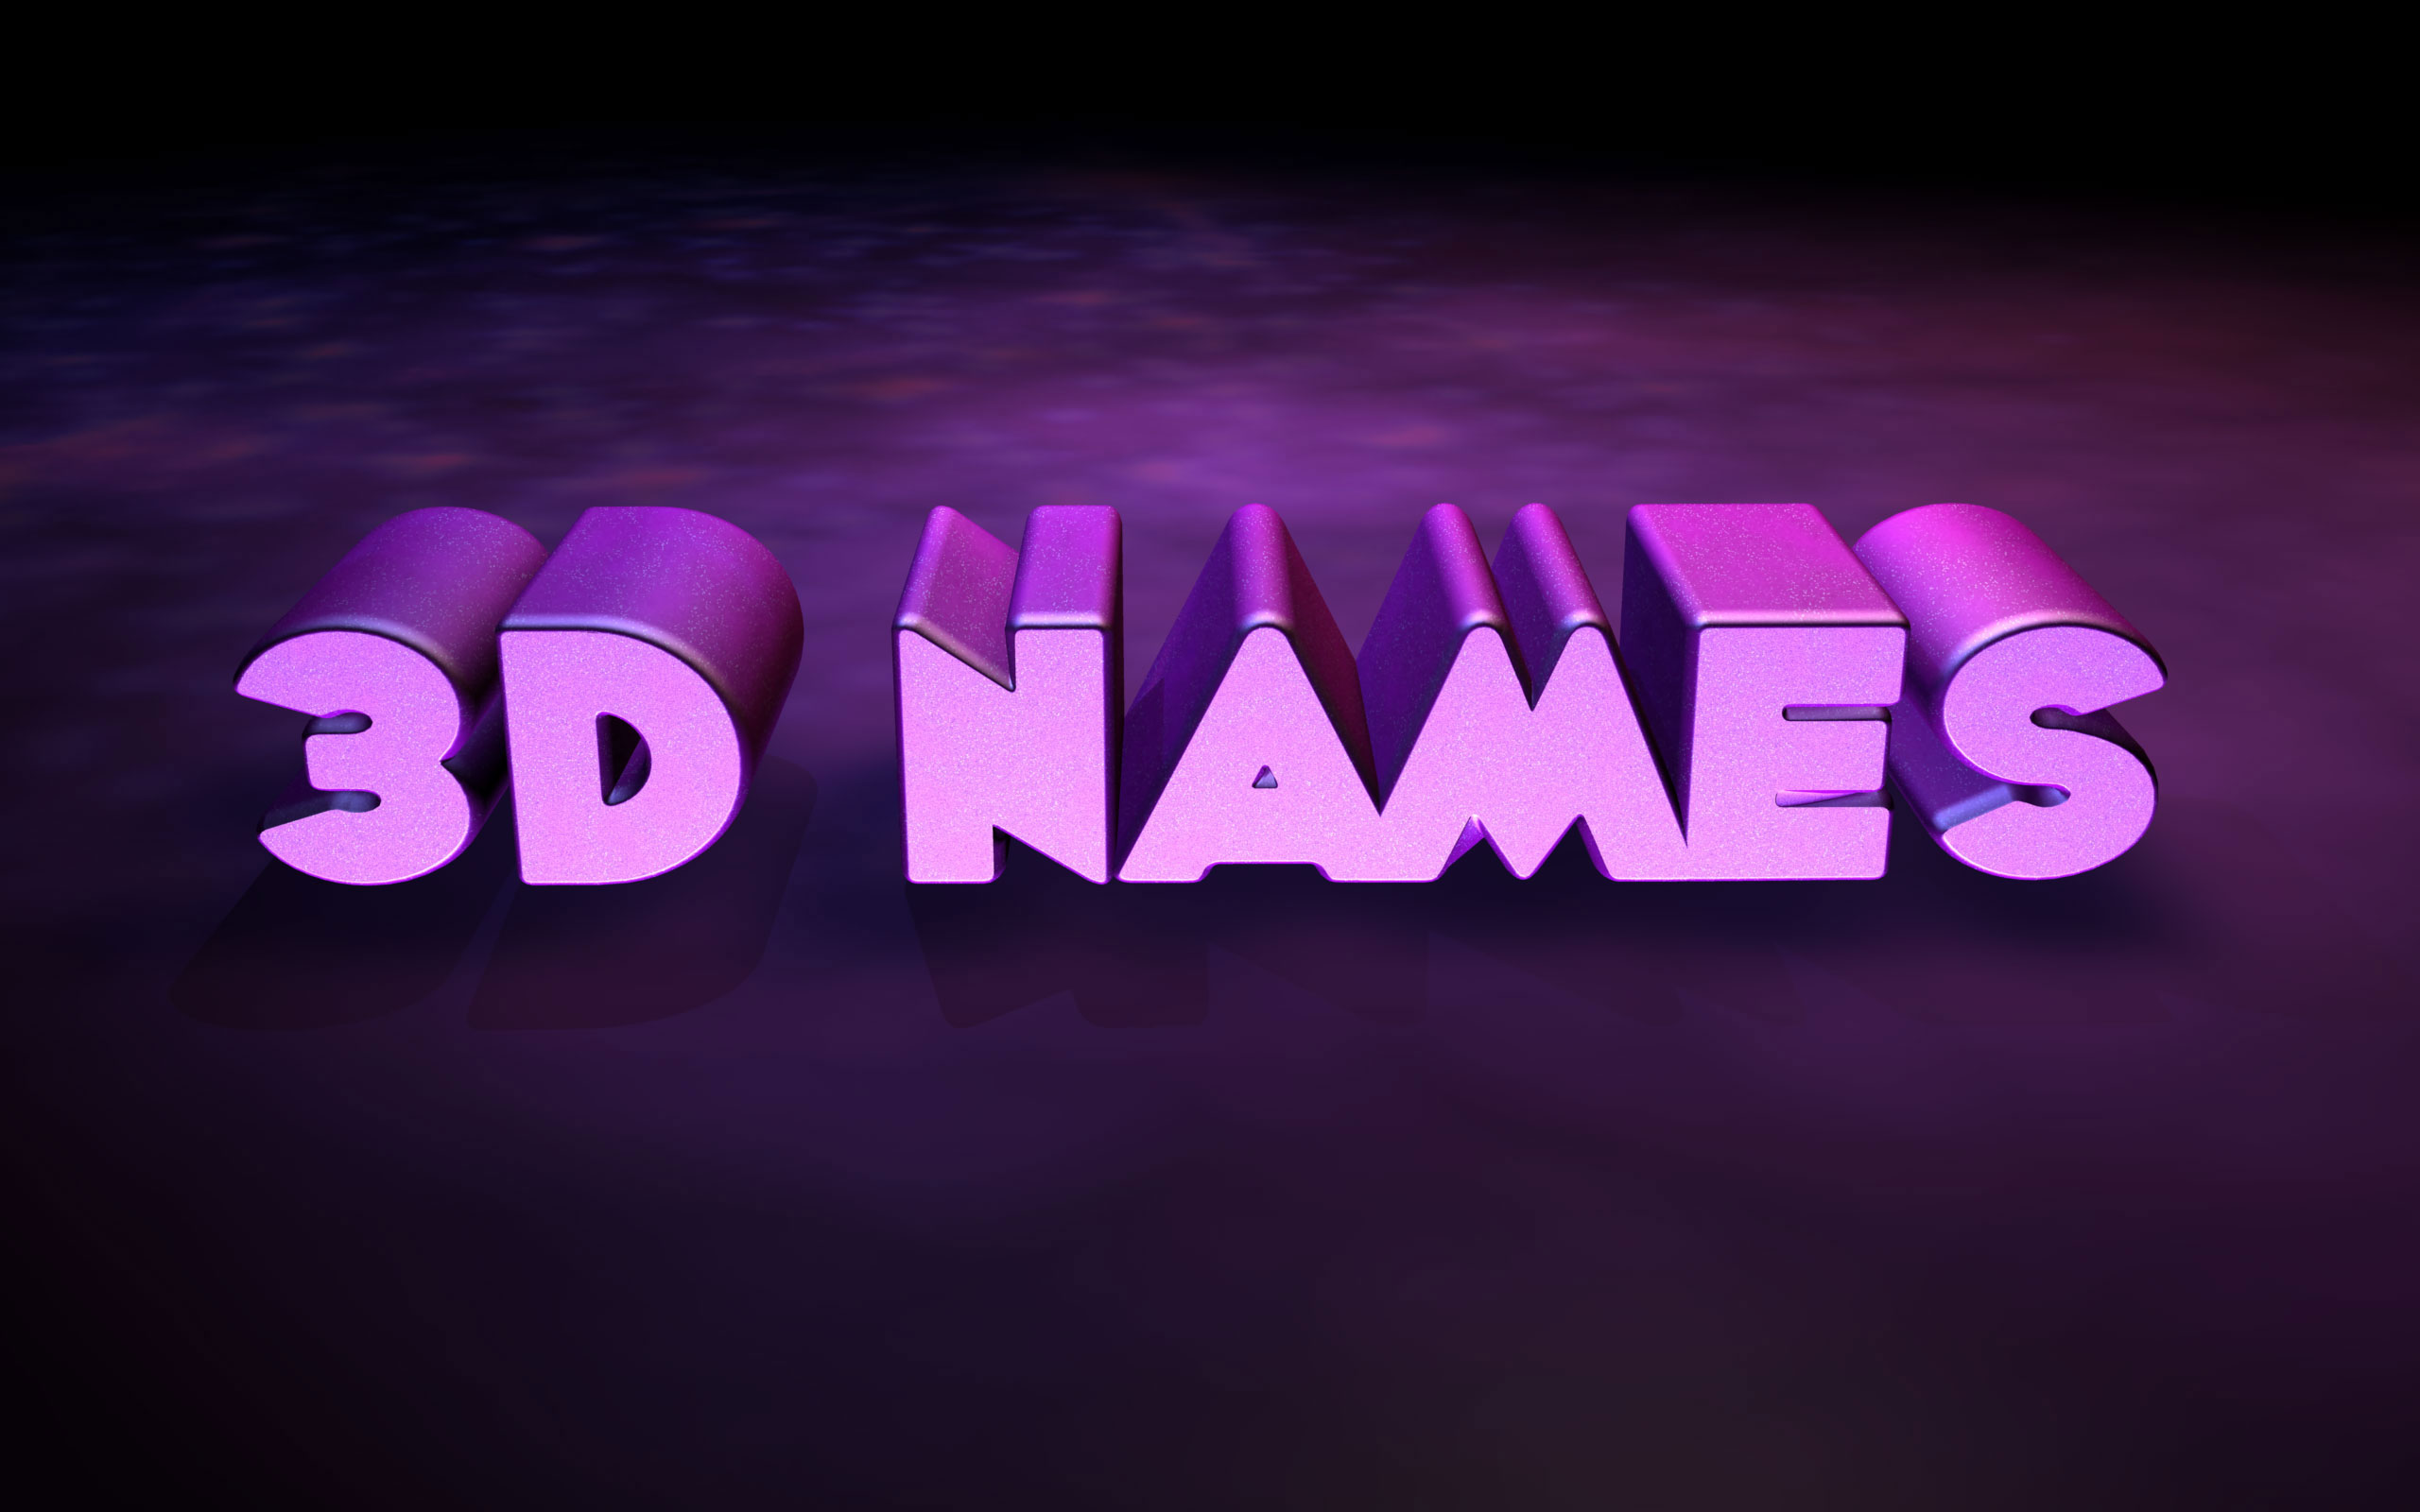 3d name wallpaper - wallpapersafari